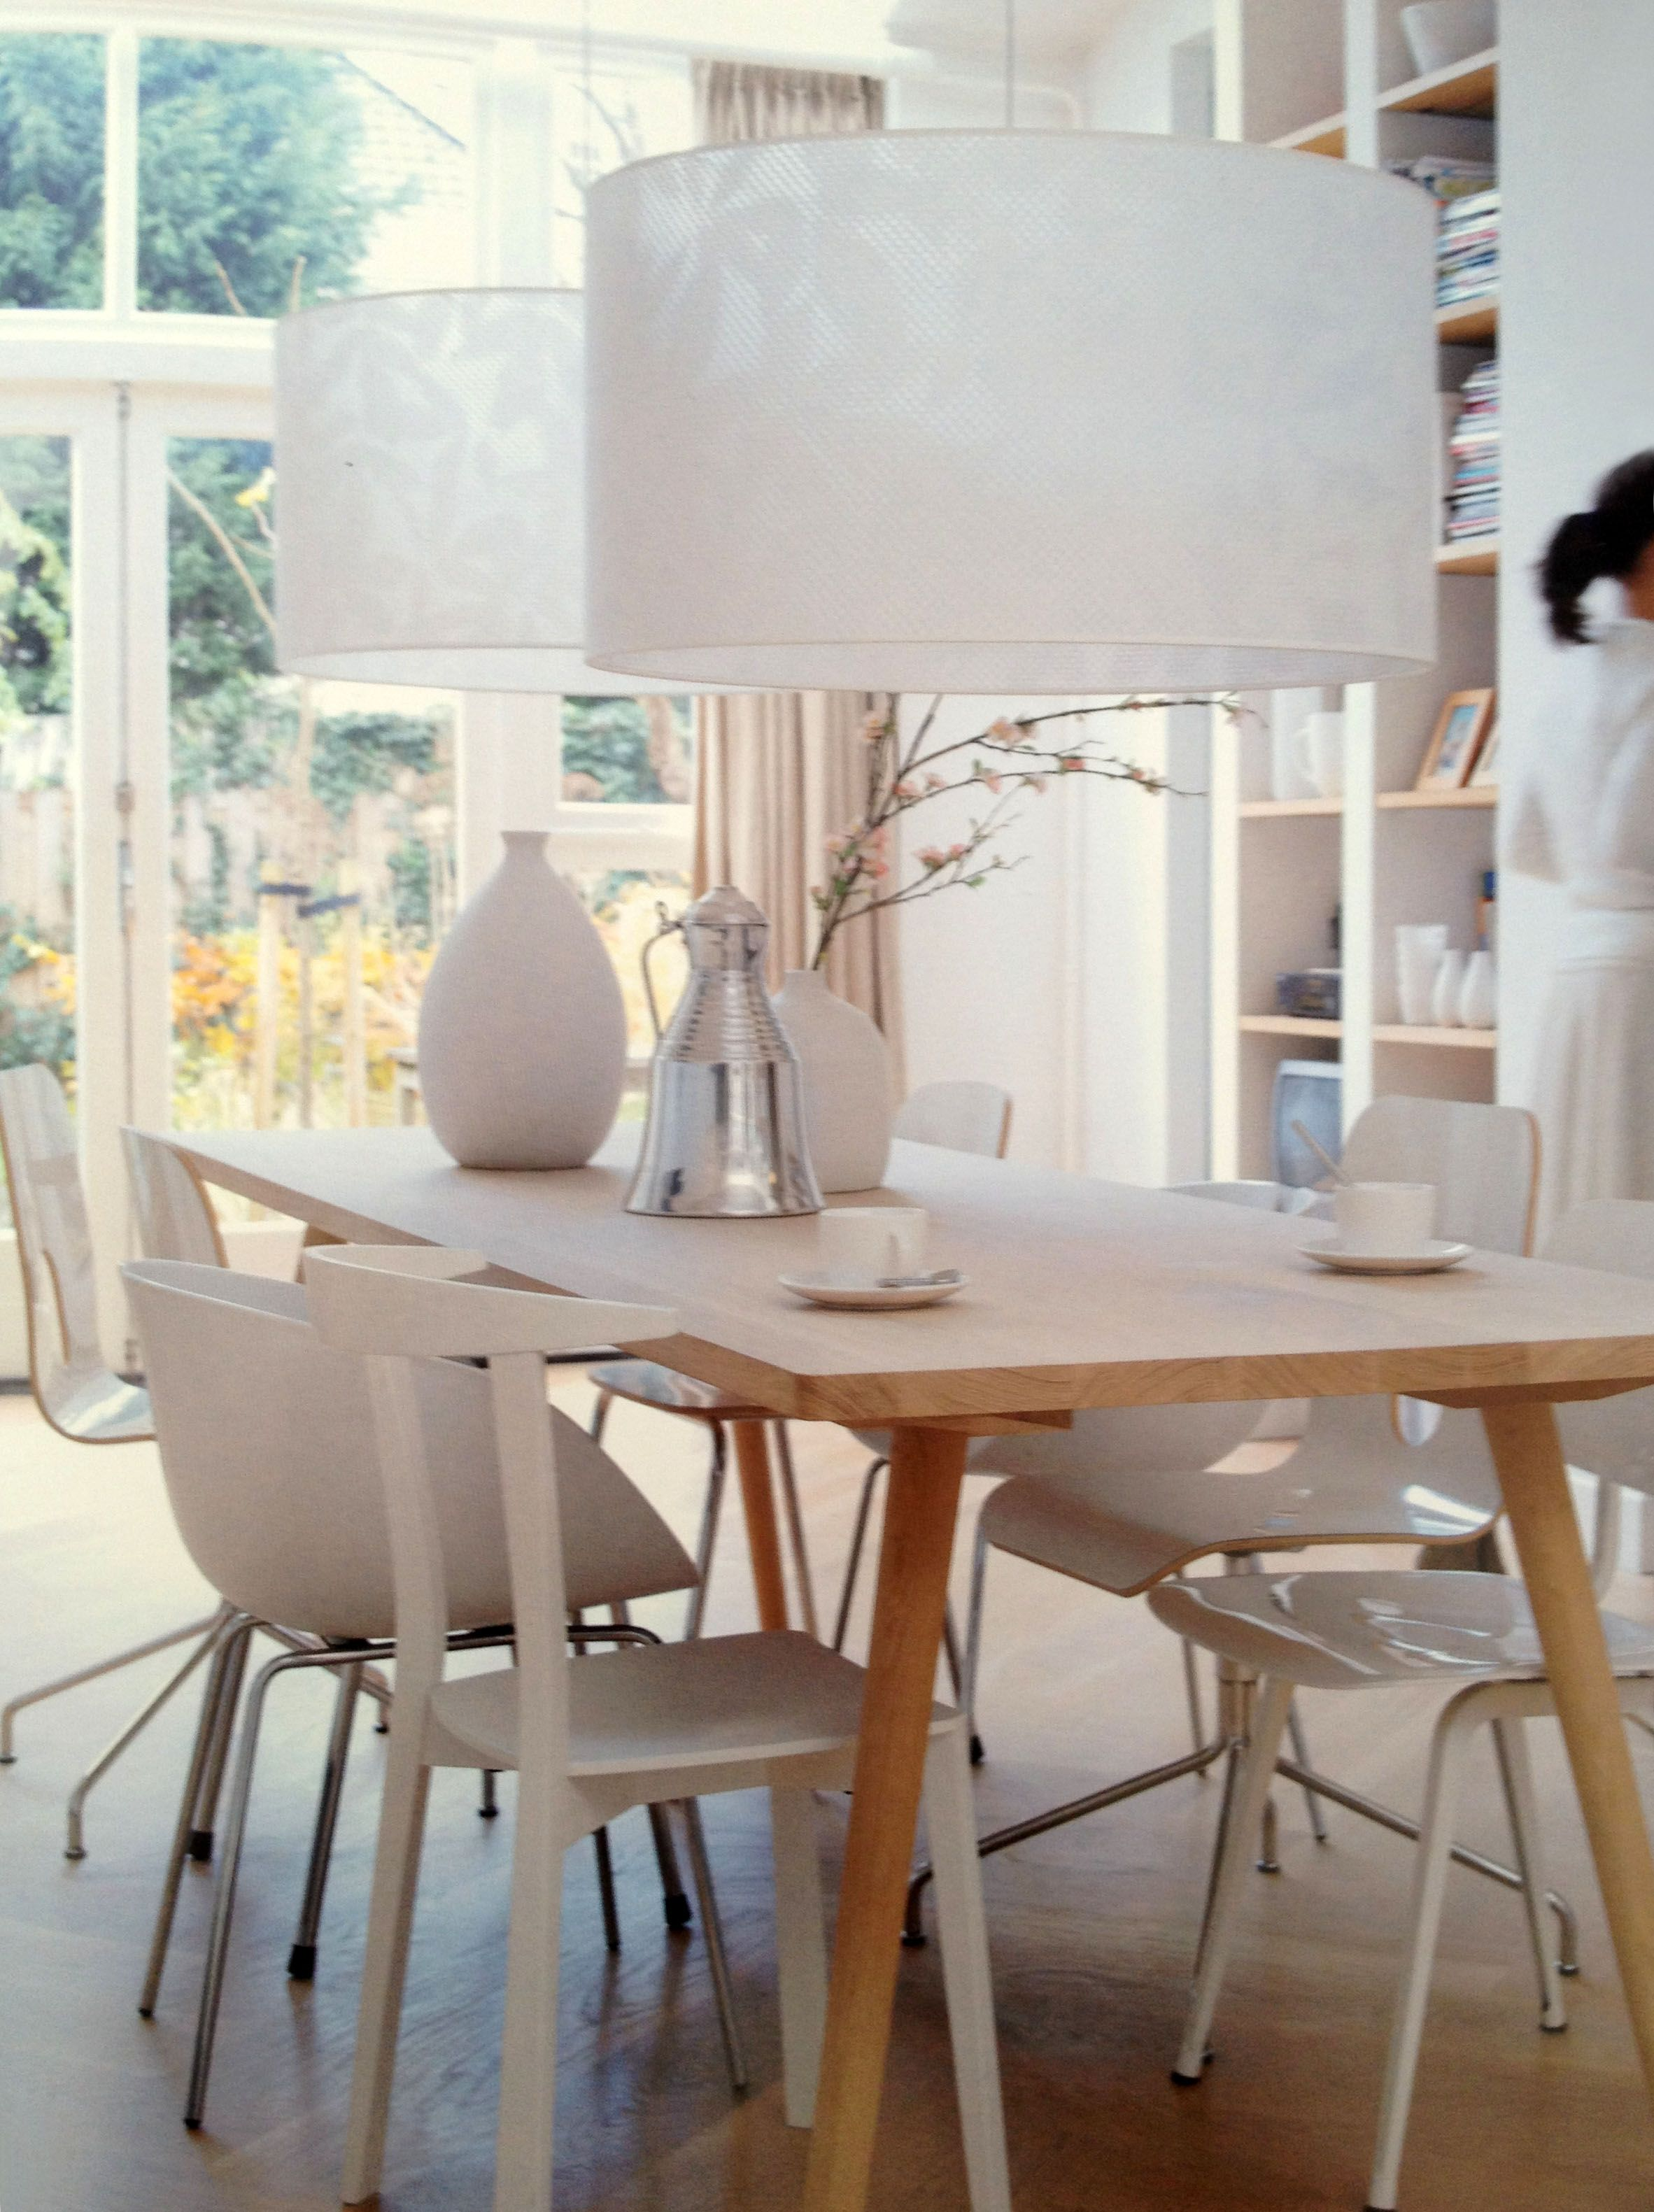 Ook mooi modern interiorshouse also spaces pinterest dining and interiors rh